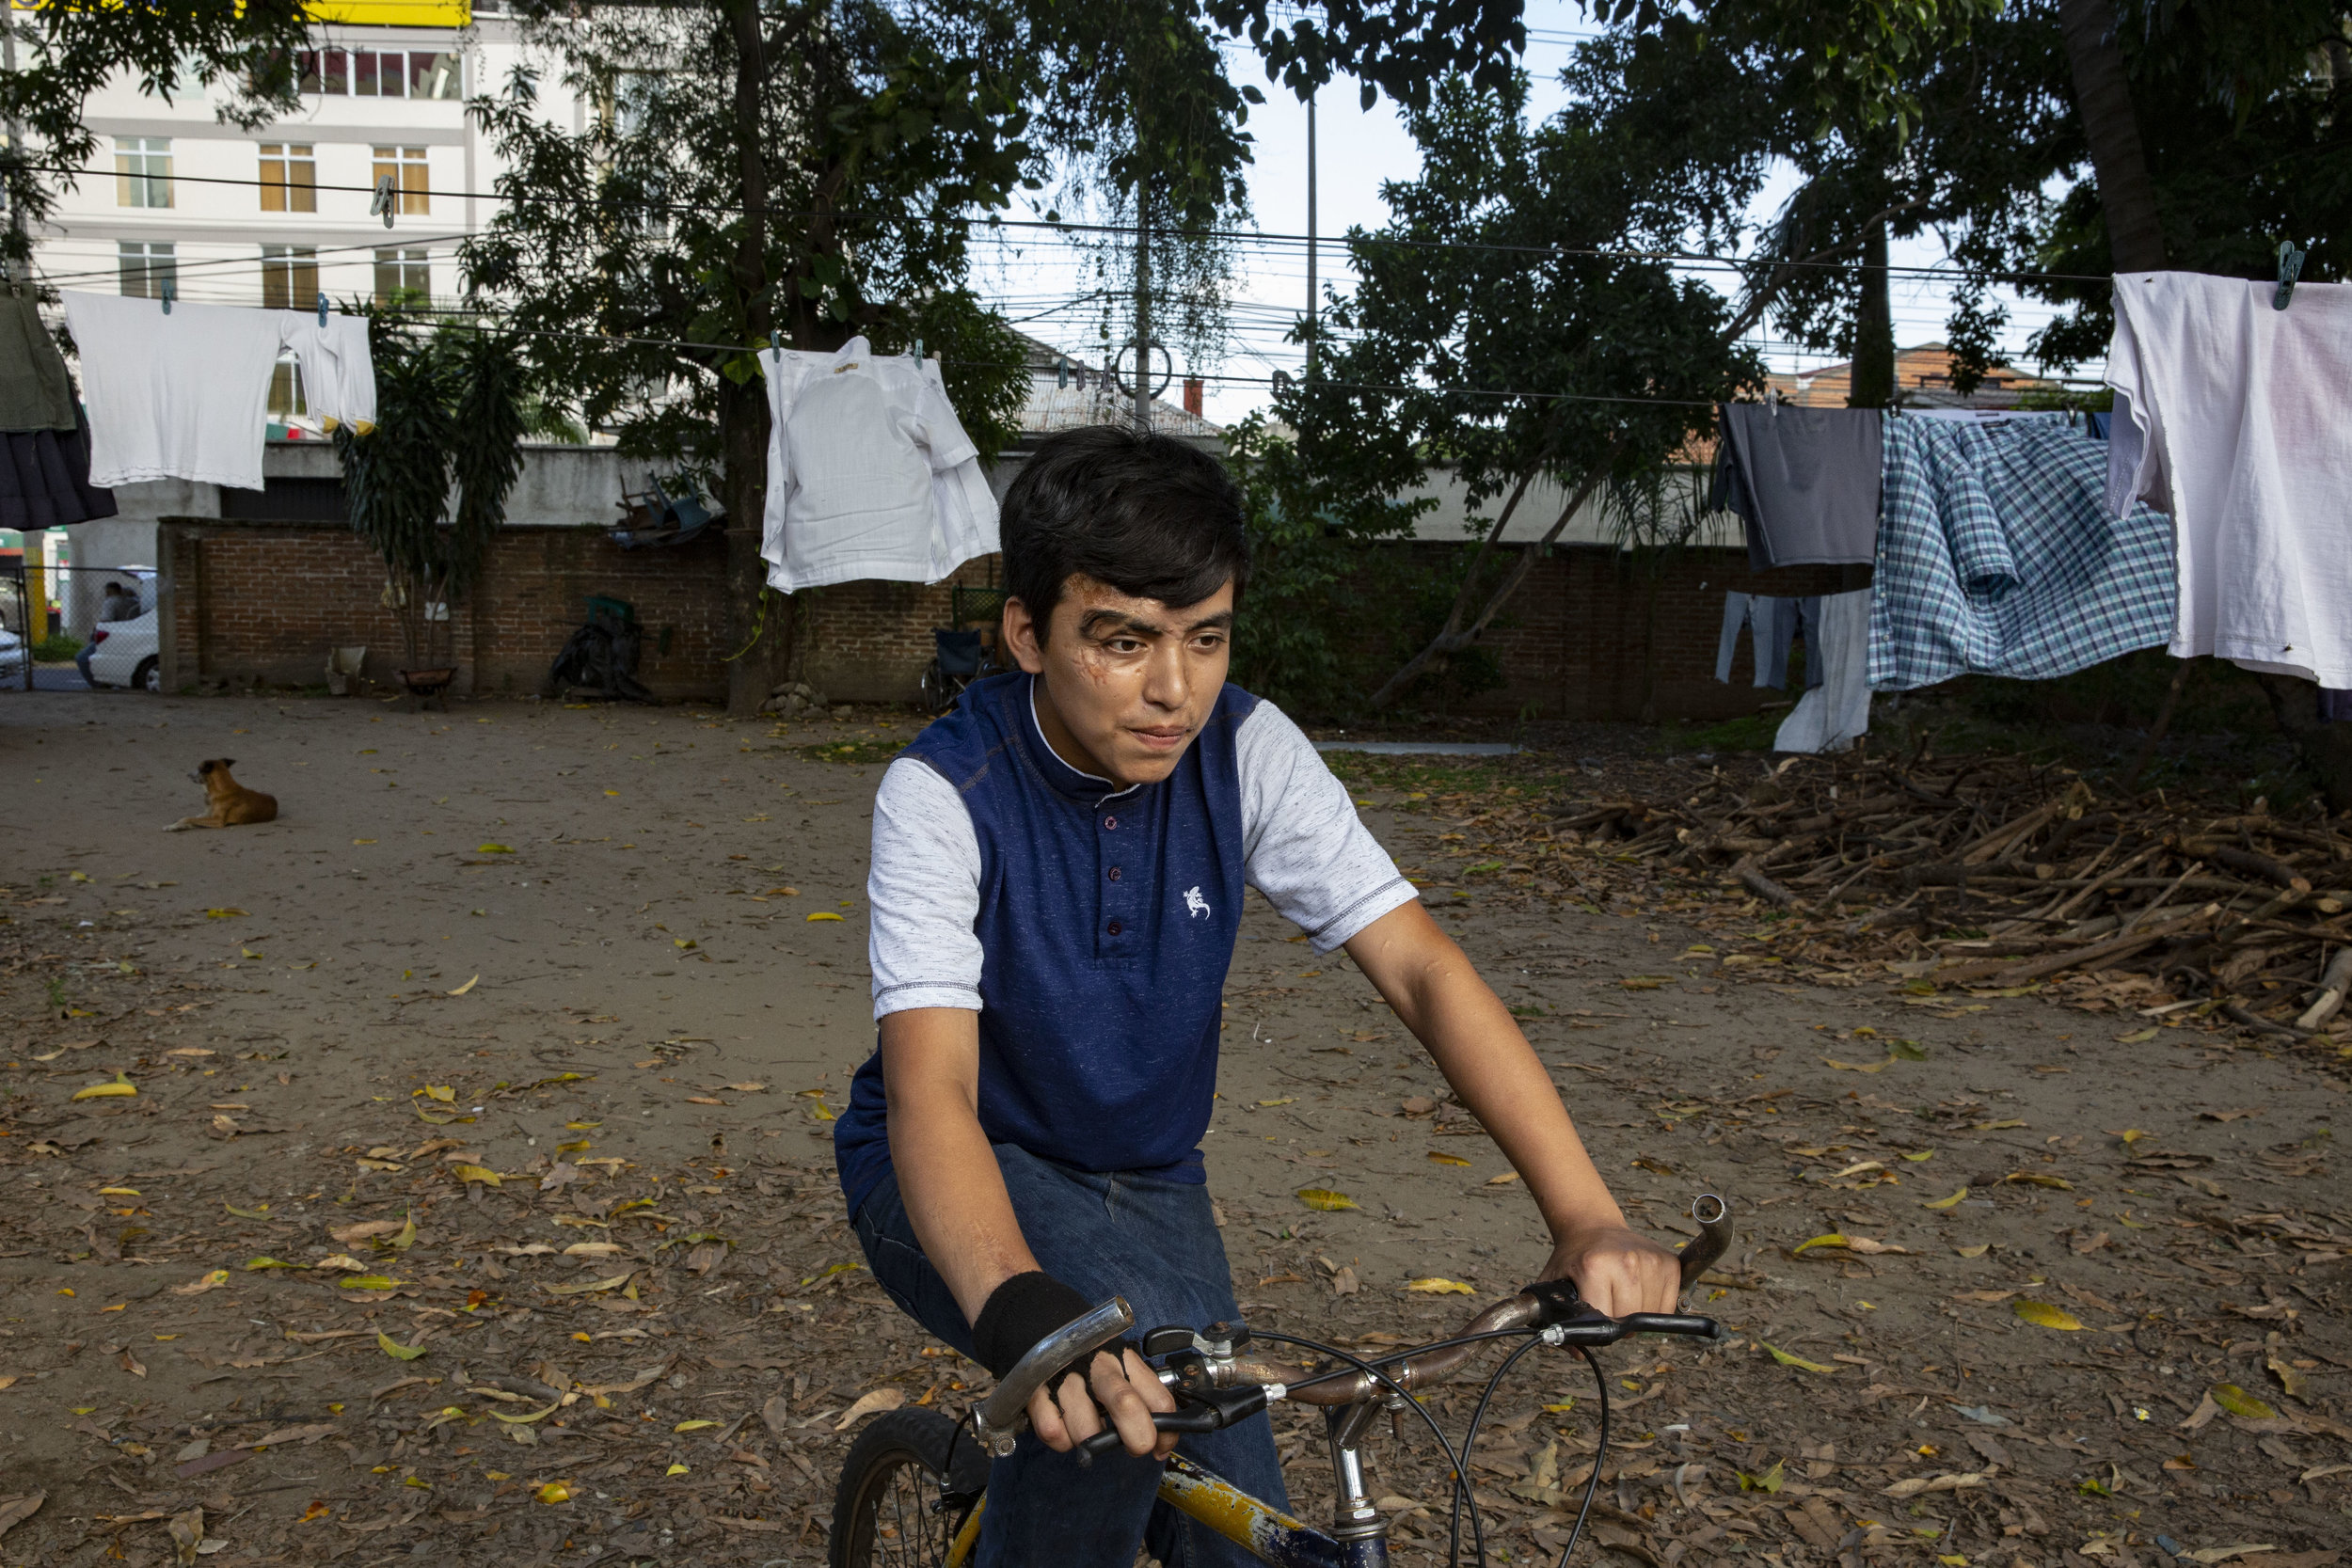 Christian Velasquez, he had several surgical operations after an car accident in 2012. Here in its bike in the courtyard of his house in San Pedro Sula, Honduras. He recevied extensive help from the Ruth Paz fundation.